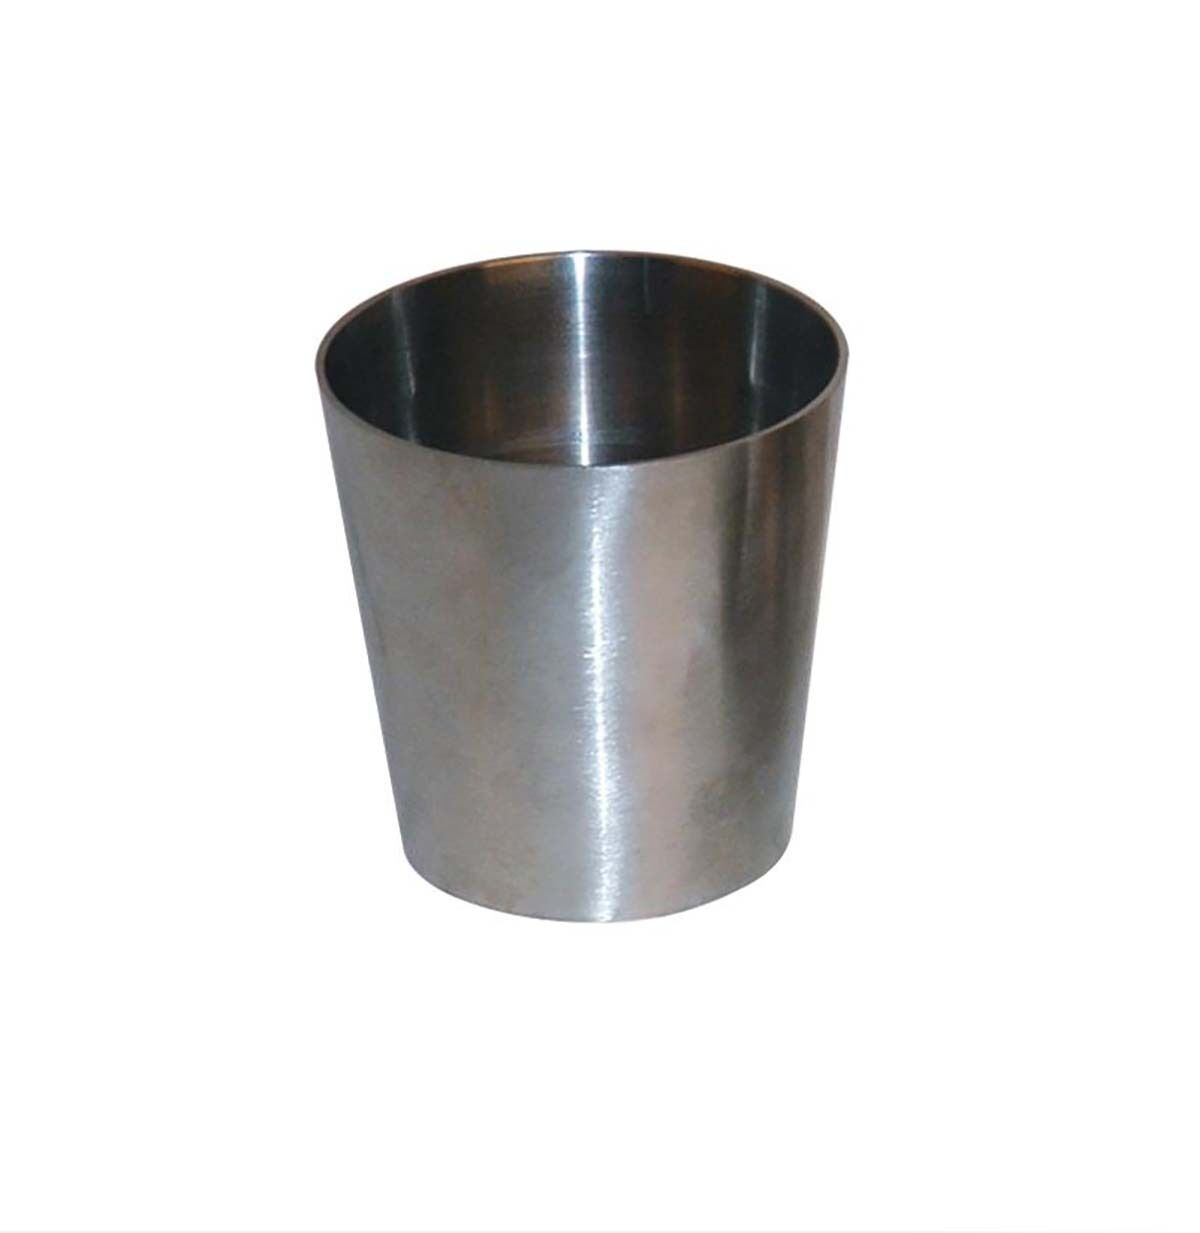 Exhaust Intercooler Pipe Tubing 4 to 3 Reducer Concentric Stainless 304 SS